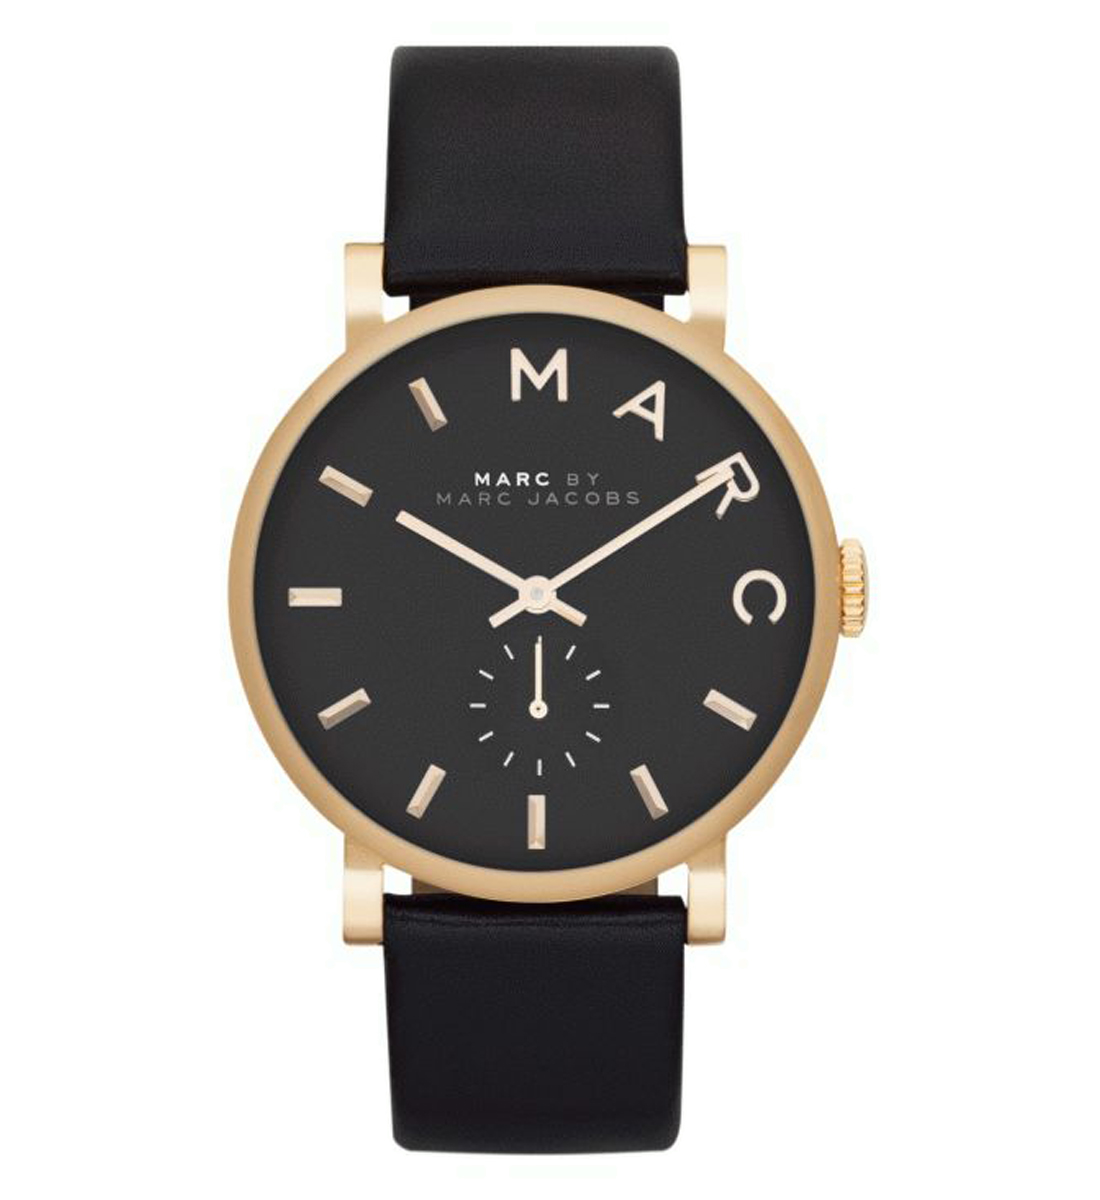 Montre marc by marc jacobs mbm1269 marc by marc jacobs